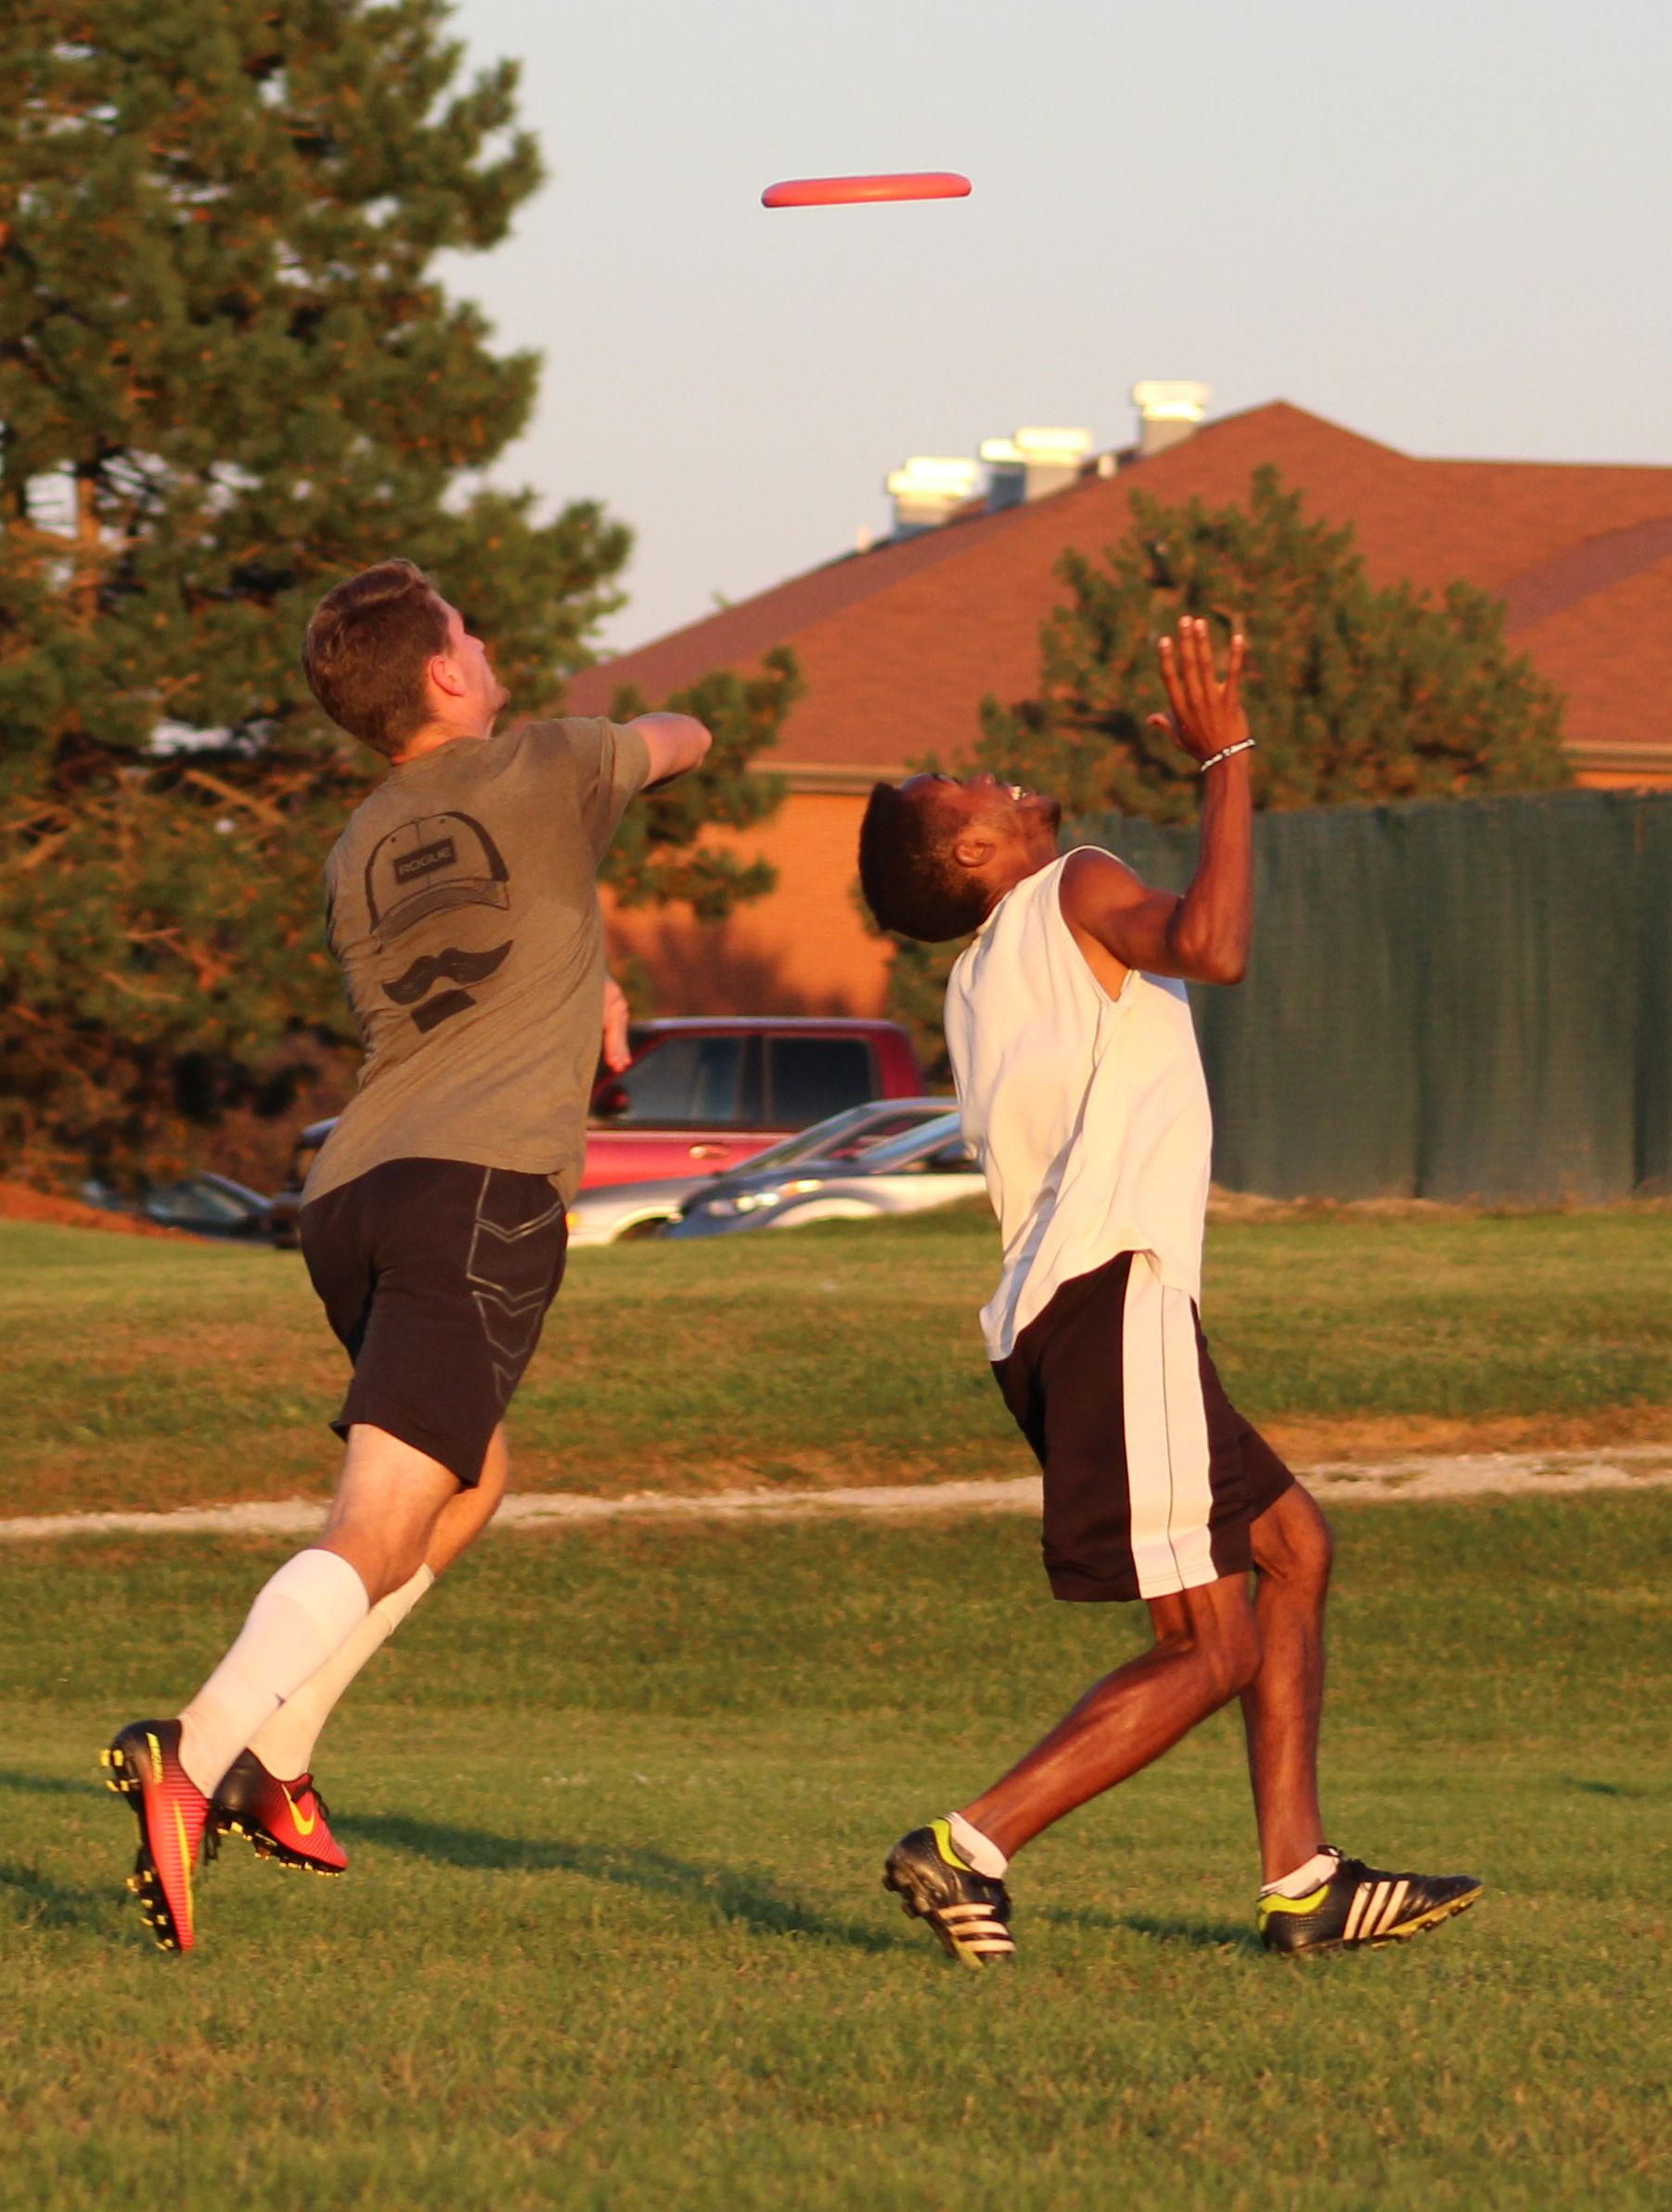 Two students catch an ultimate frisbee